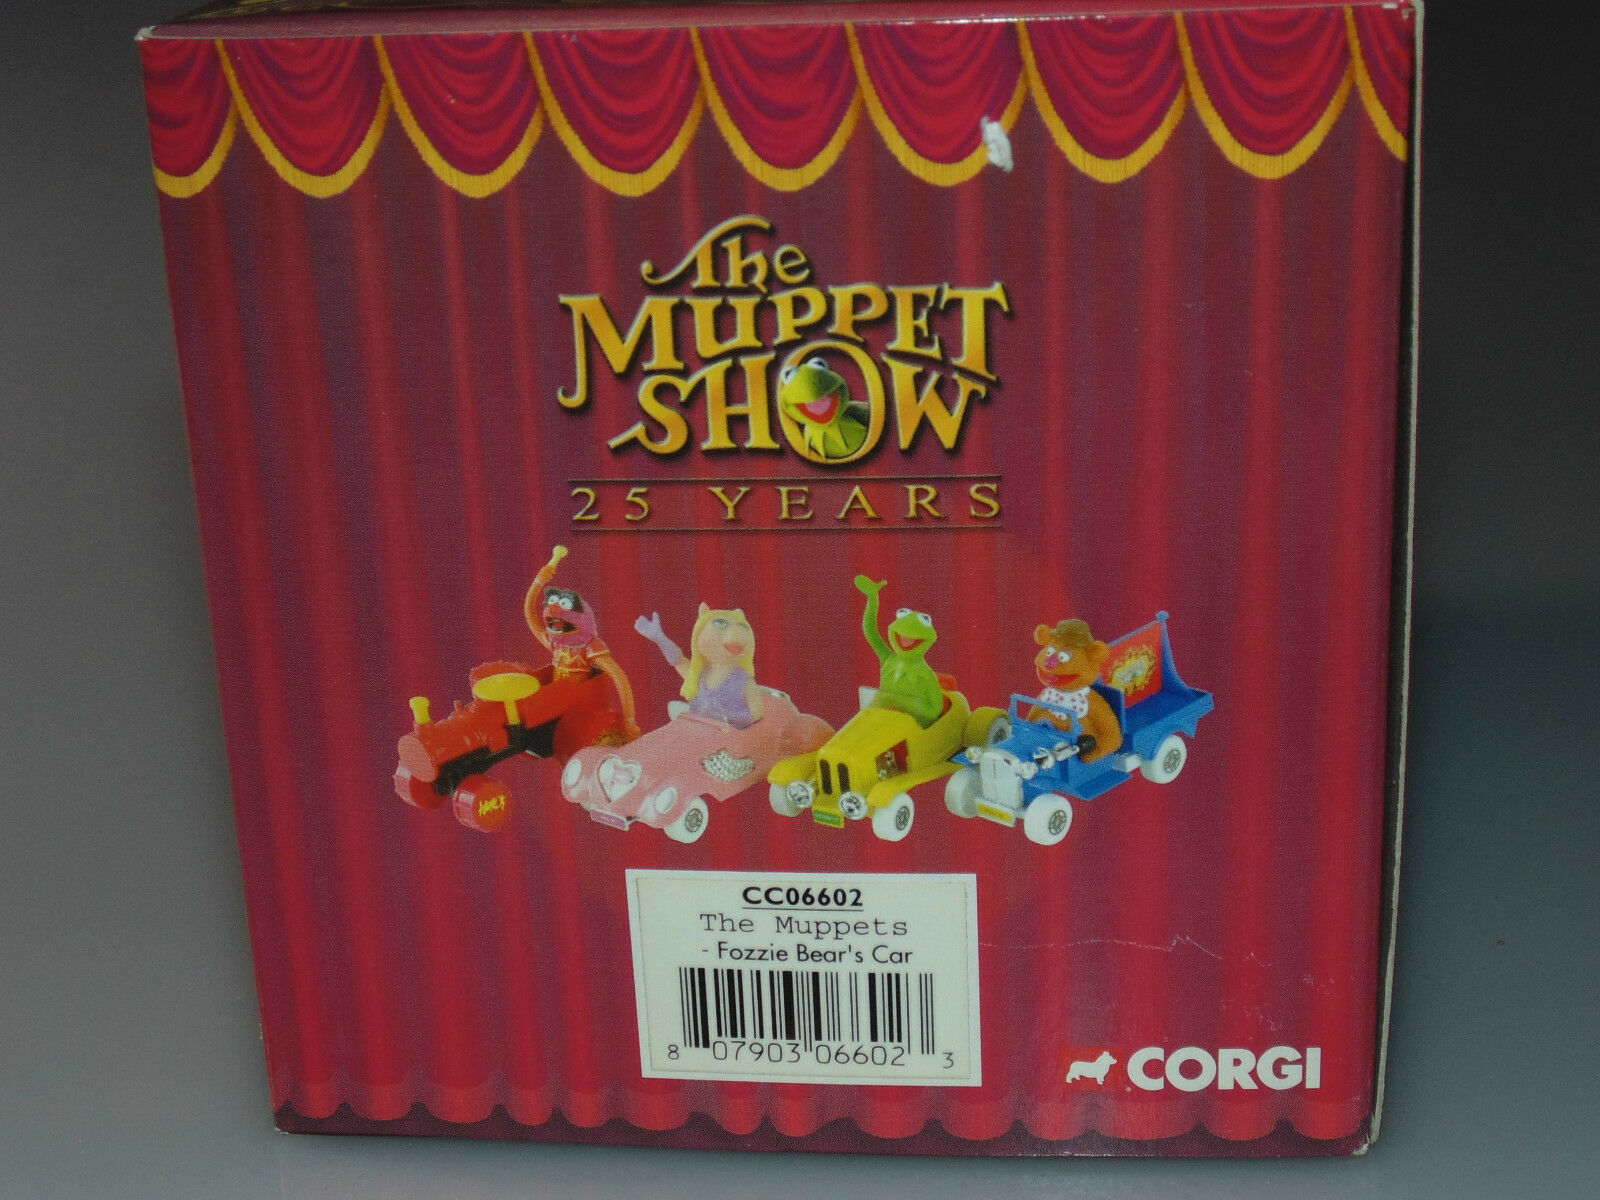 Corgi The Muppet Muppet Muppet Show 25 Years Fozzie Bear car Muppets Collectable 3f241b